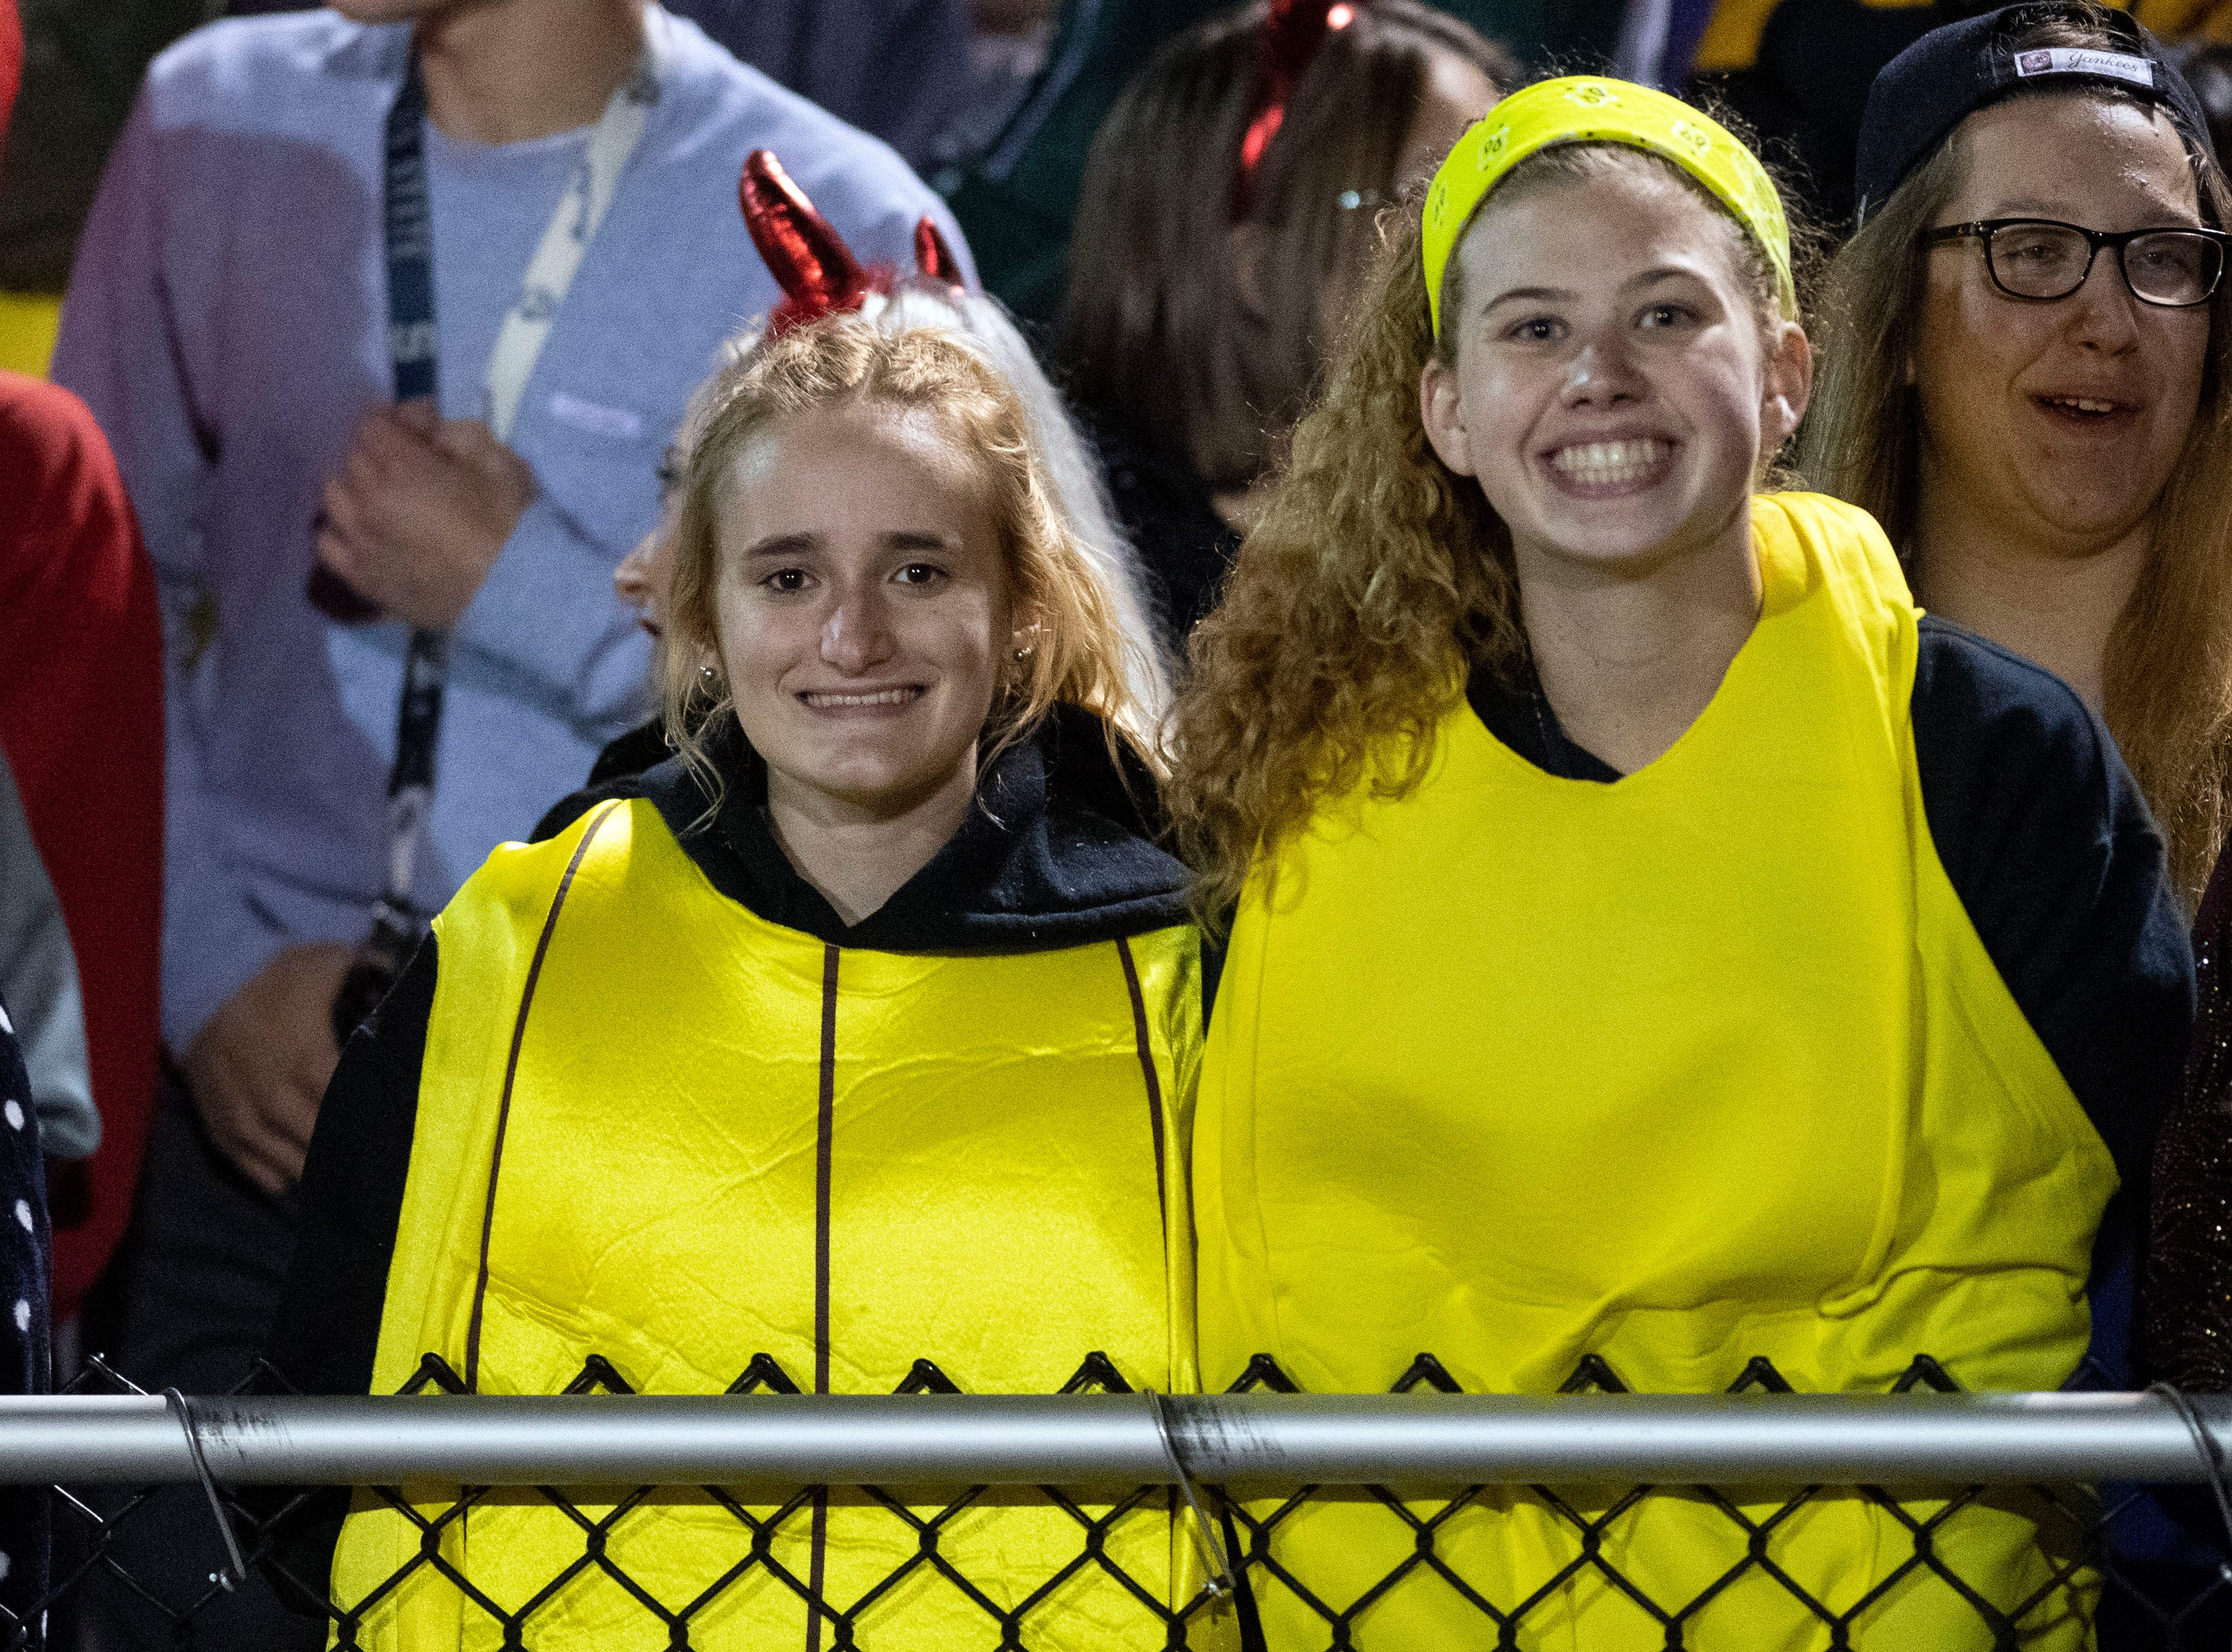 Northeastern students dressed up for the Bobcats' homecoming game on Friday, Oct. 12, 2018. The Central York Panthers beat the Northeastern Bobcats, 44-7.